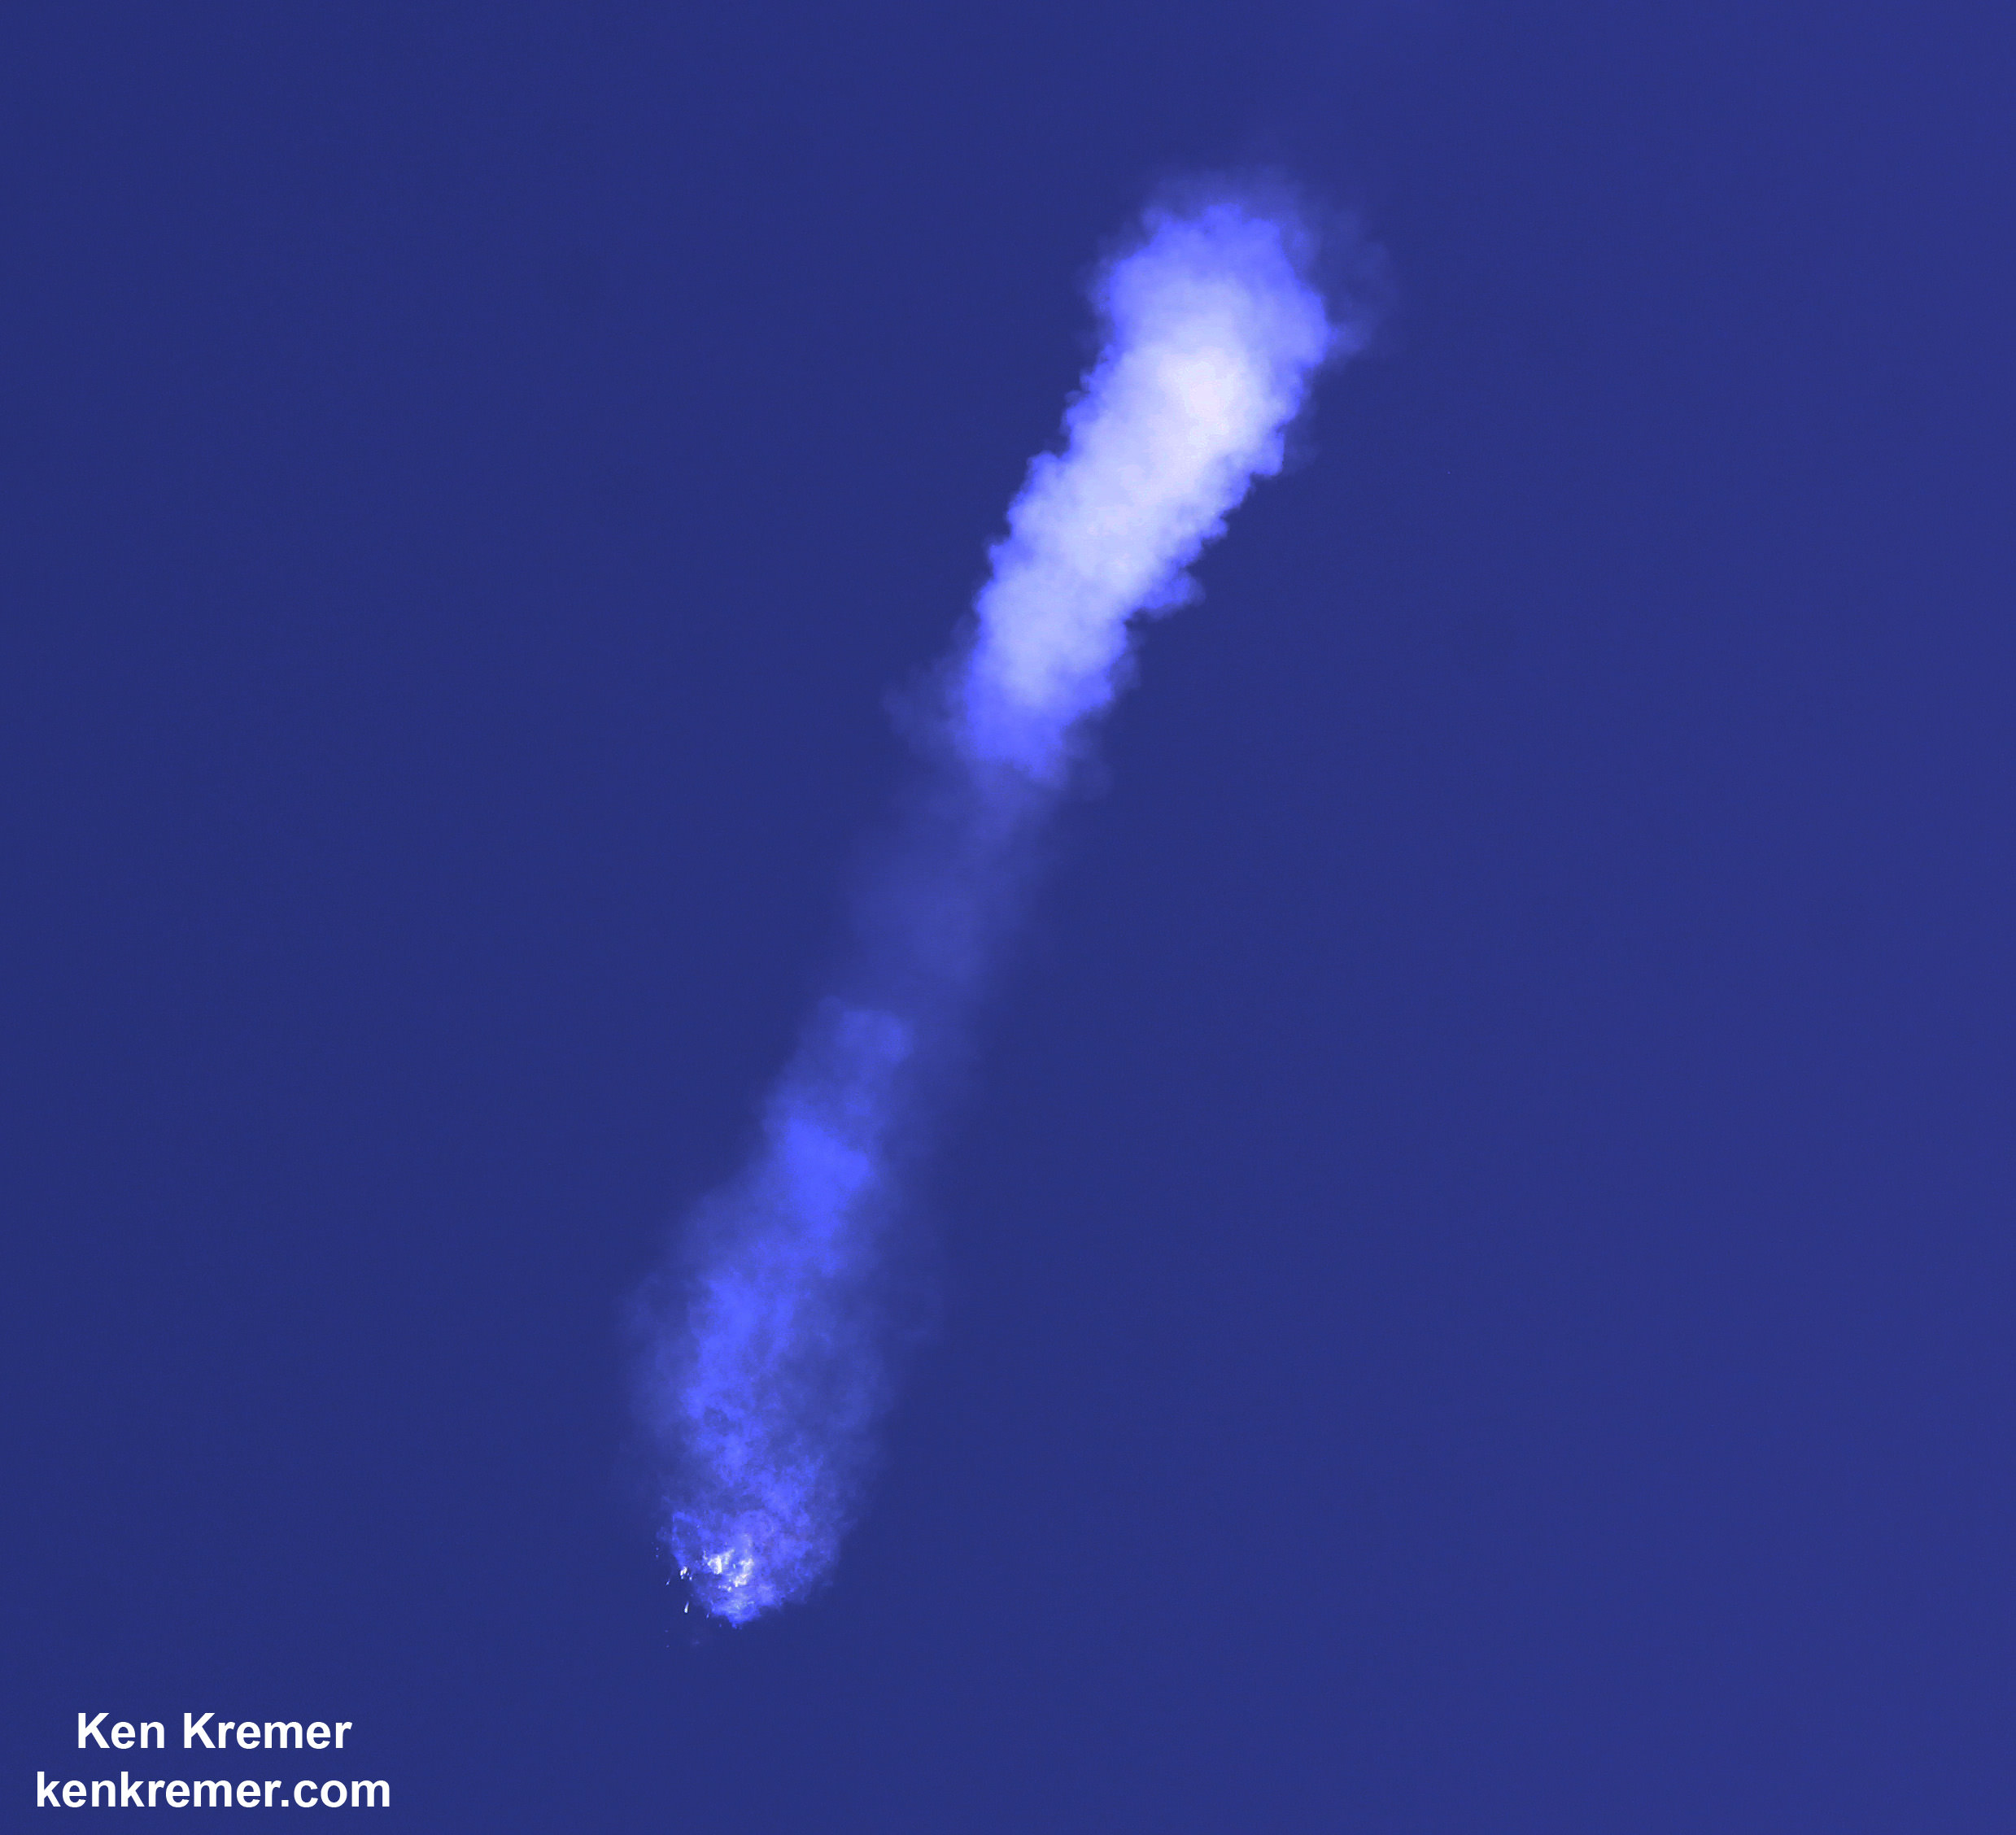 SpaceX Falcon 9 rocket and Dragon resupply spaceship explode about 2 minutes after liftoff from Cape Canaveral Air Force Station in Florida on June 28, 2015. Credit: Ken Kremer/kenkremer.com